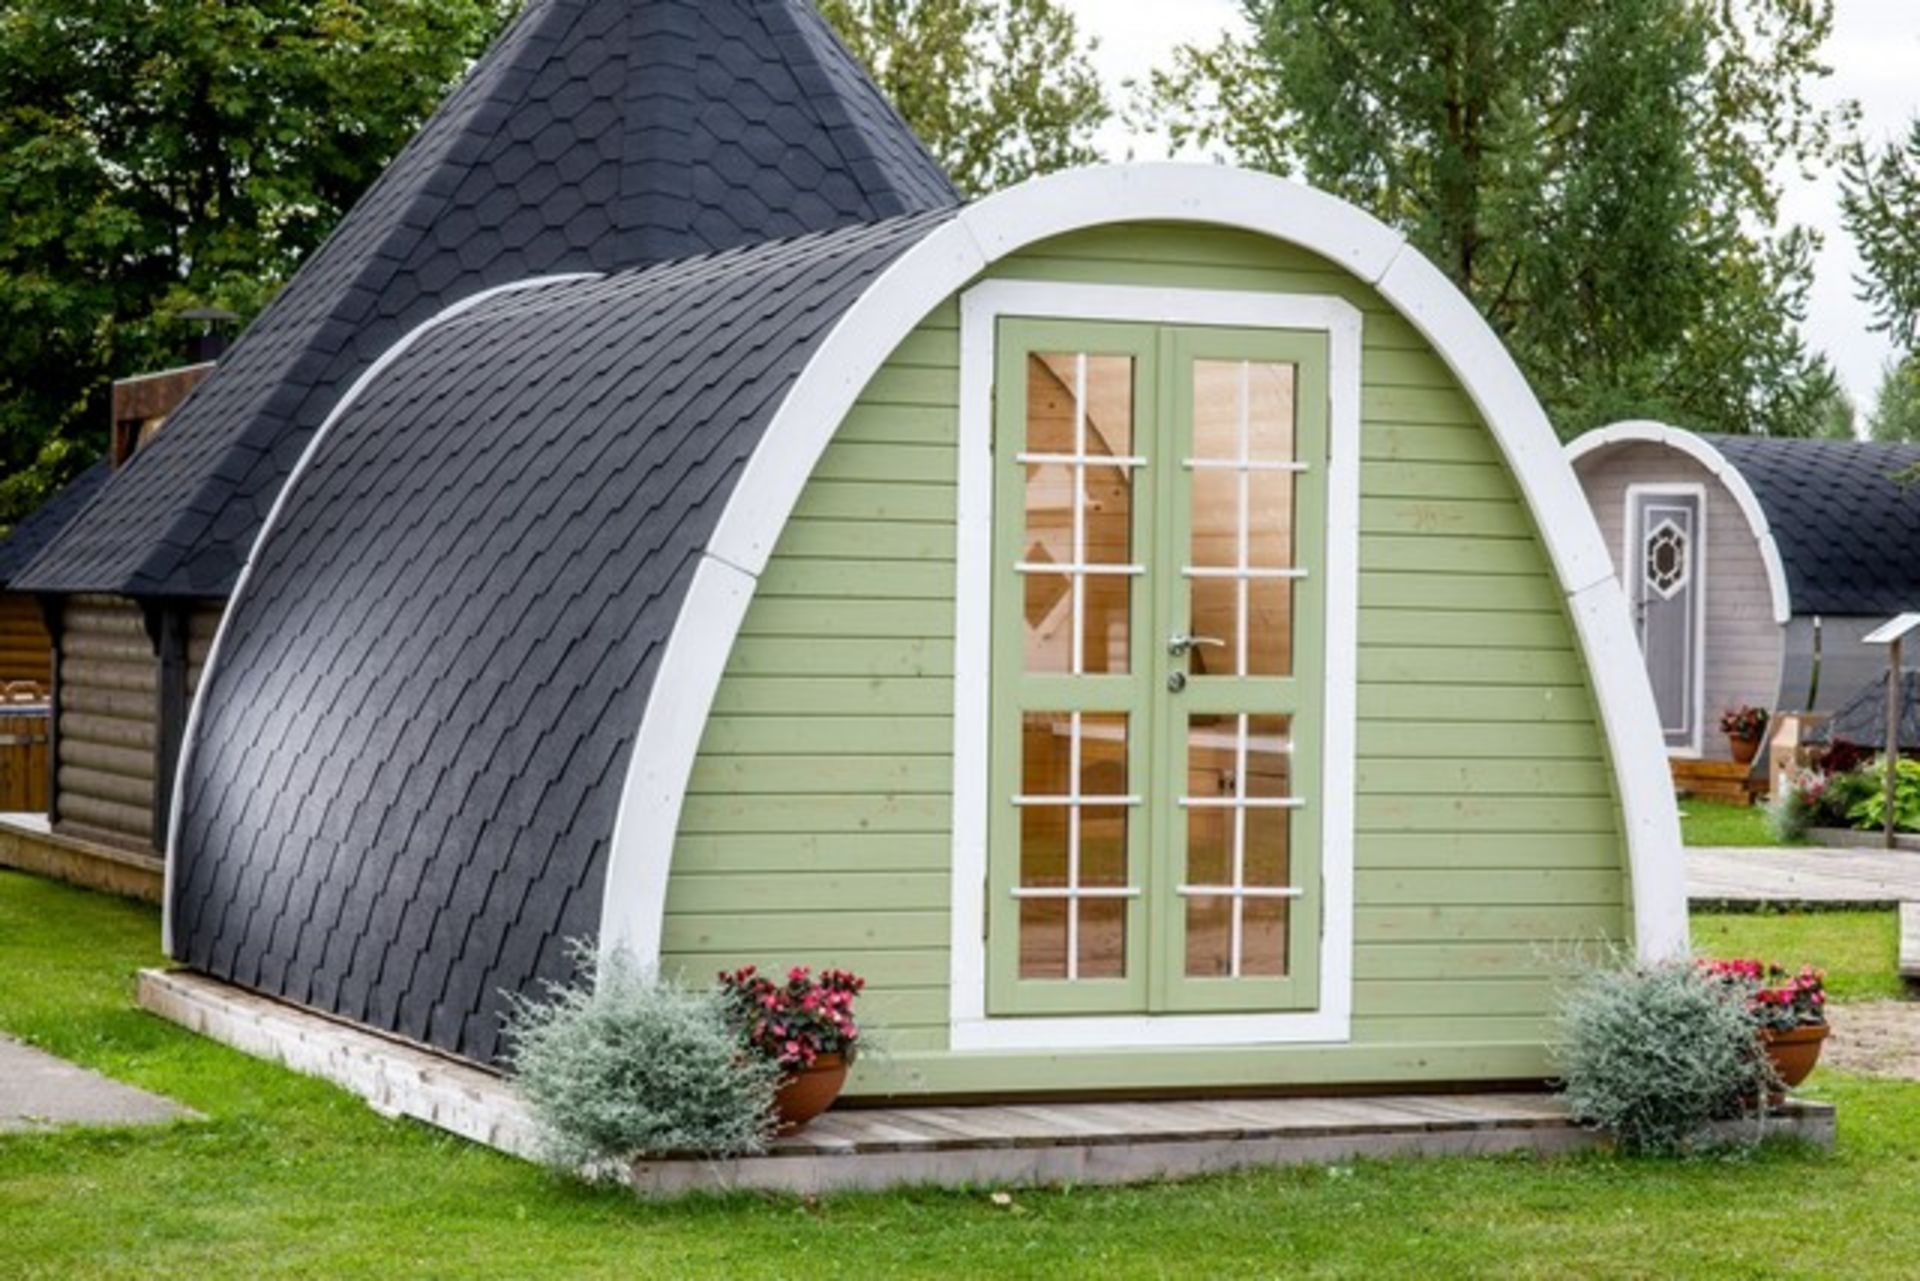 Lot 18050 - V Brand New Insulated 13.4m sq Spruce Camping Pod - Insulated Walls Floors and Panels - Two